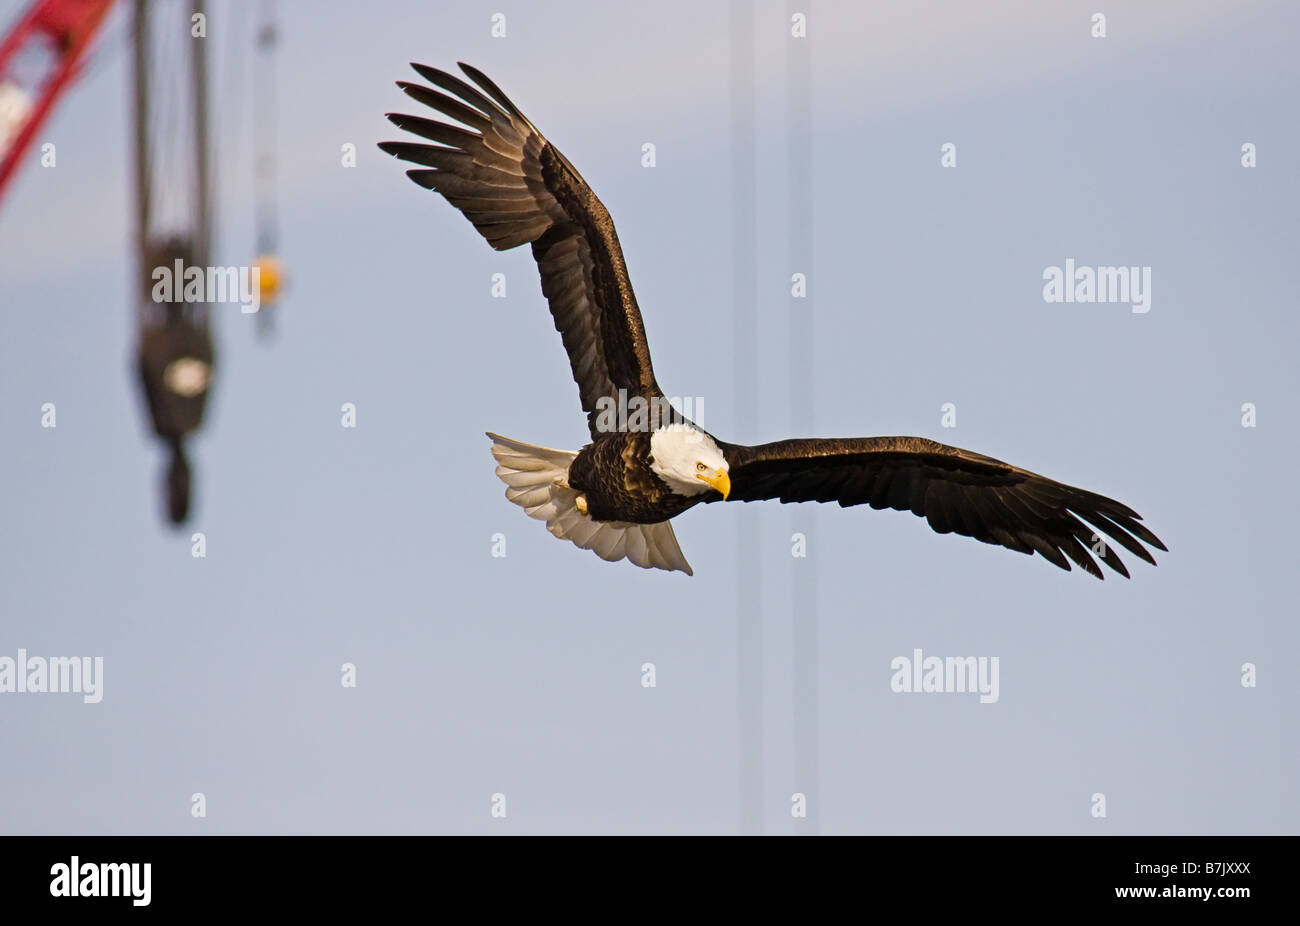 Bald Eagle Flying In Front Of A Hook Hanging On A Crane Stock Photo